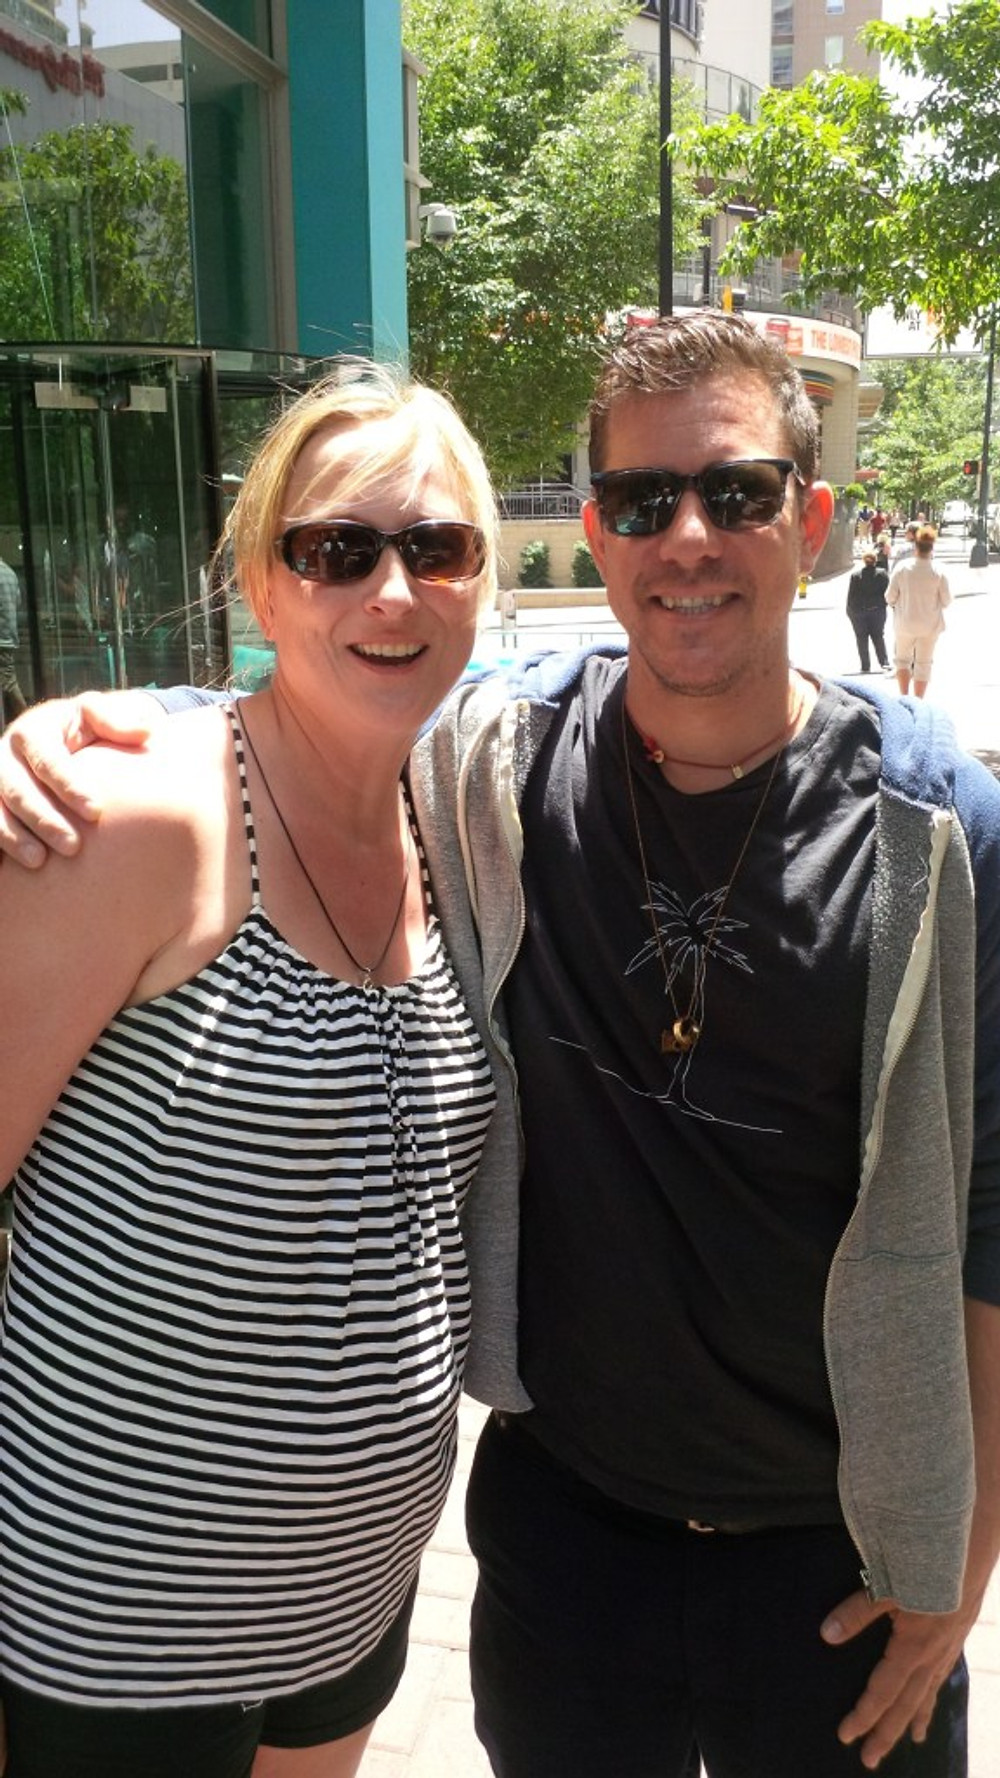 A picture of me with Stefan Lessard from DMB.